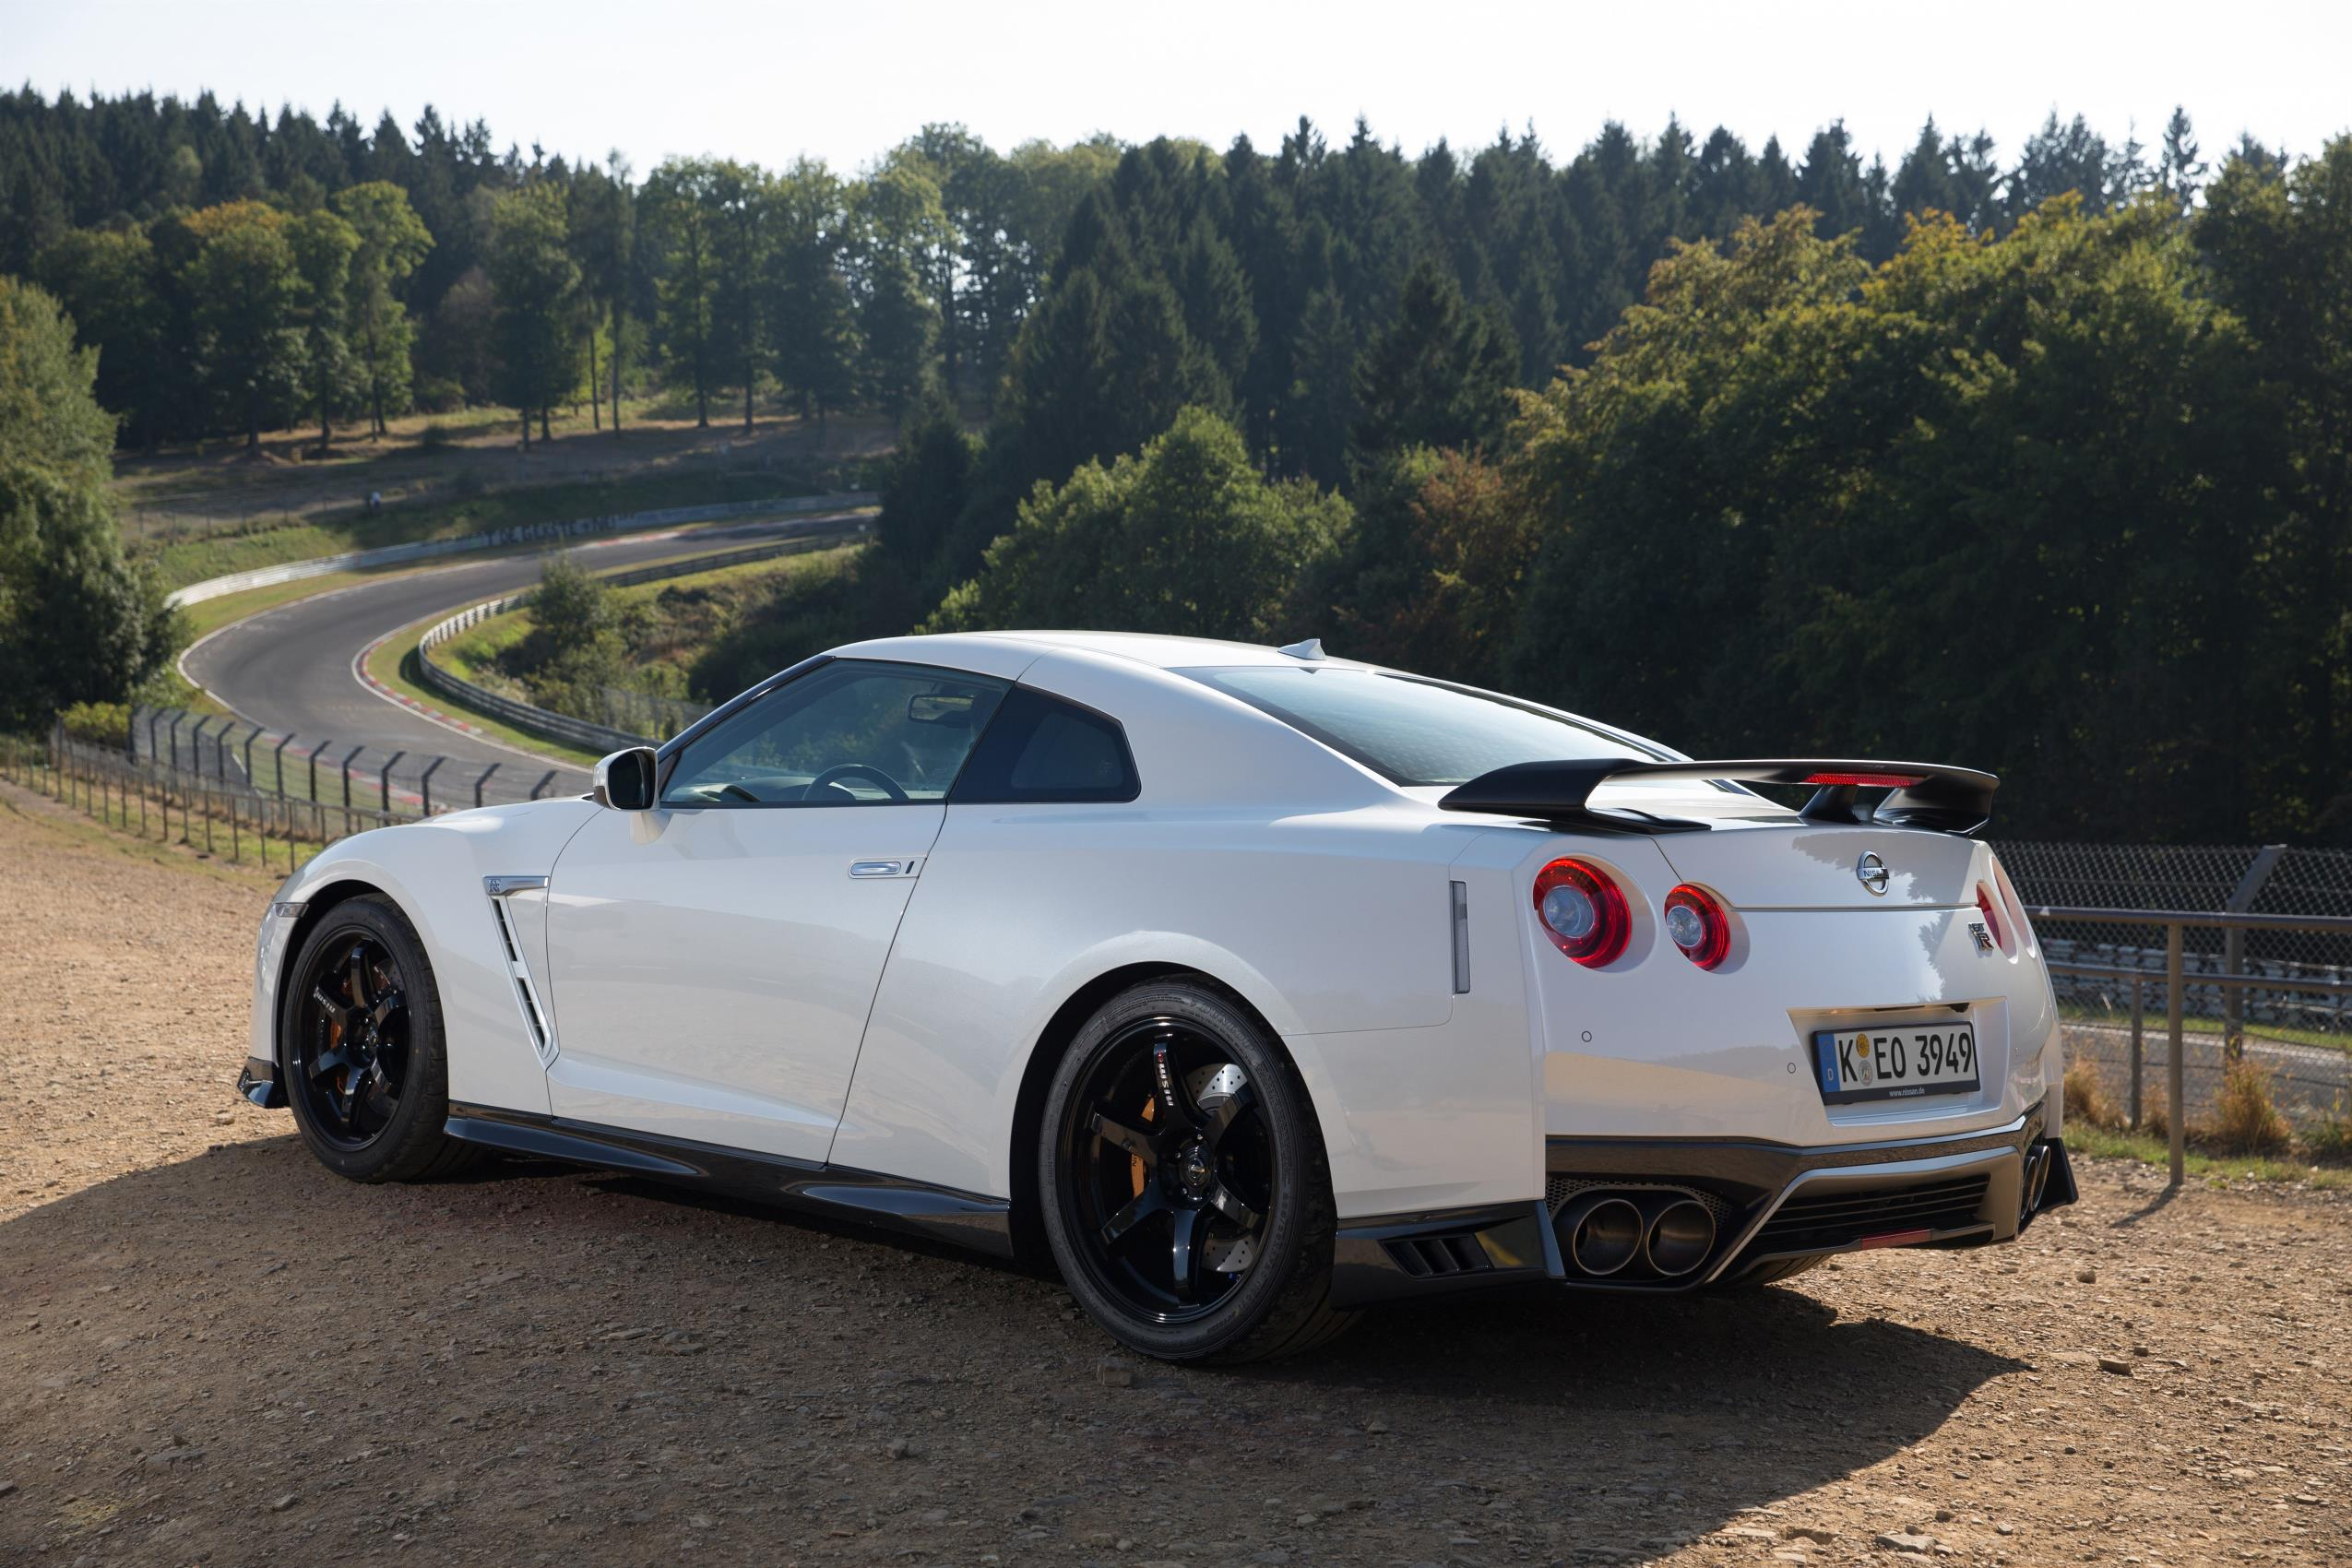 Official: 2017 Nissan GT-R Track Edition by NISMO - GTspirit